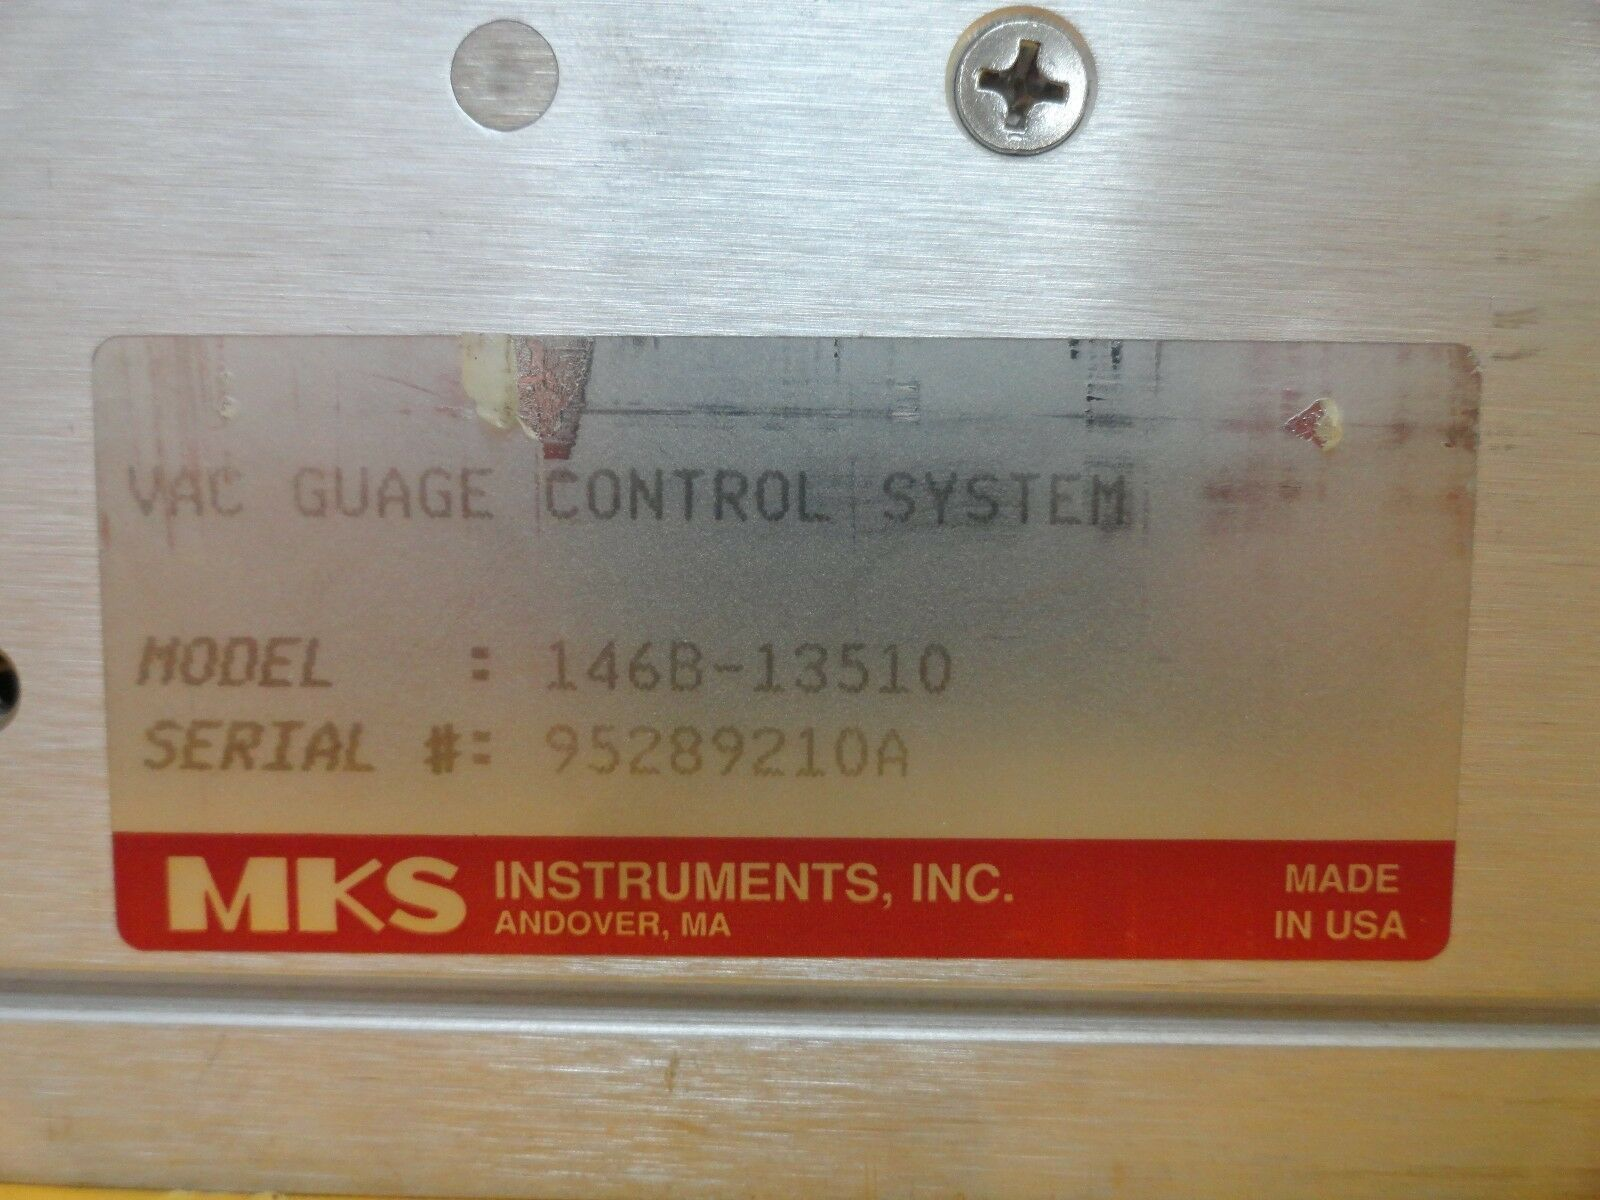 MKS 146B-13510 Vacuum Gauge Measurement Control System Used Tested Working